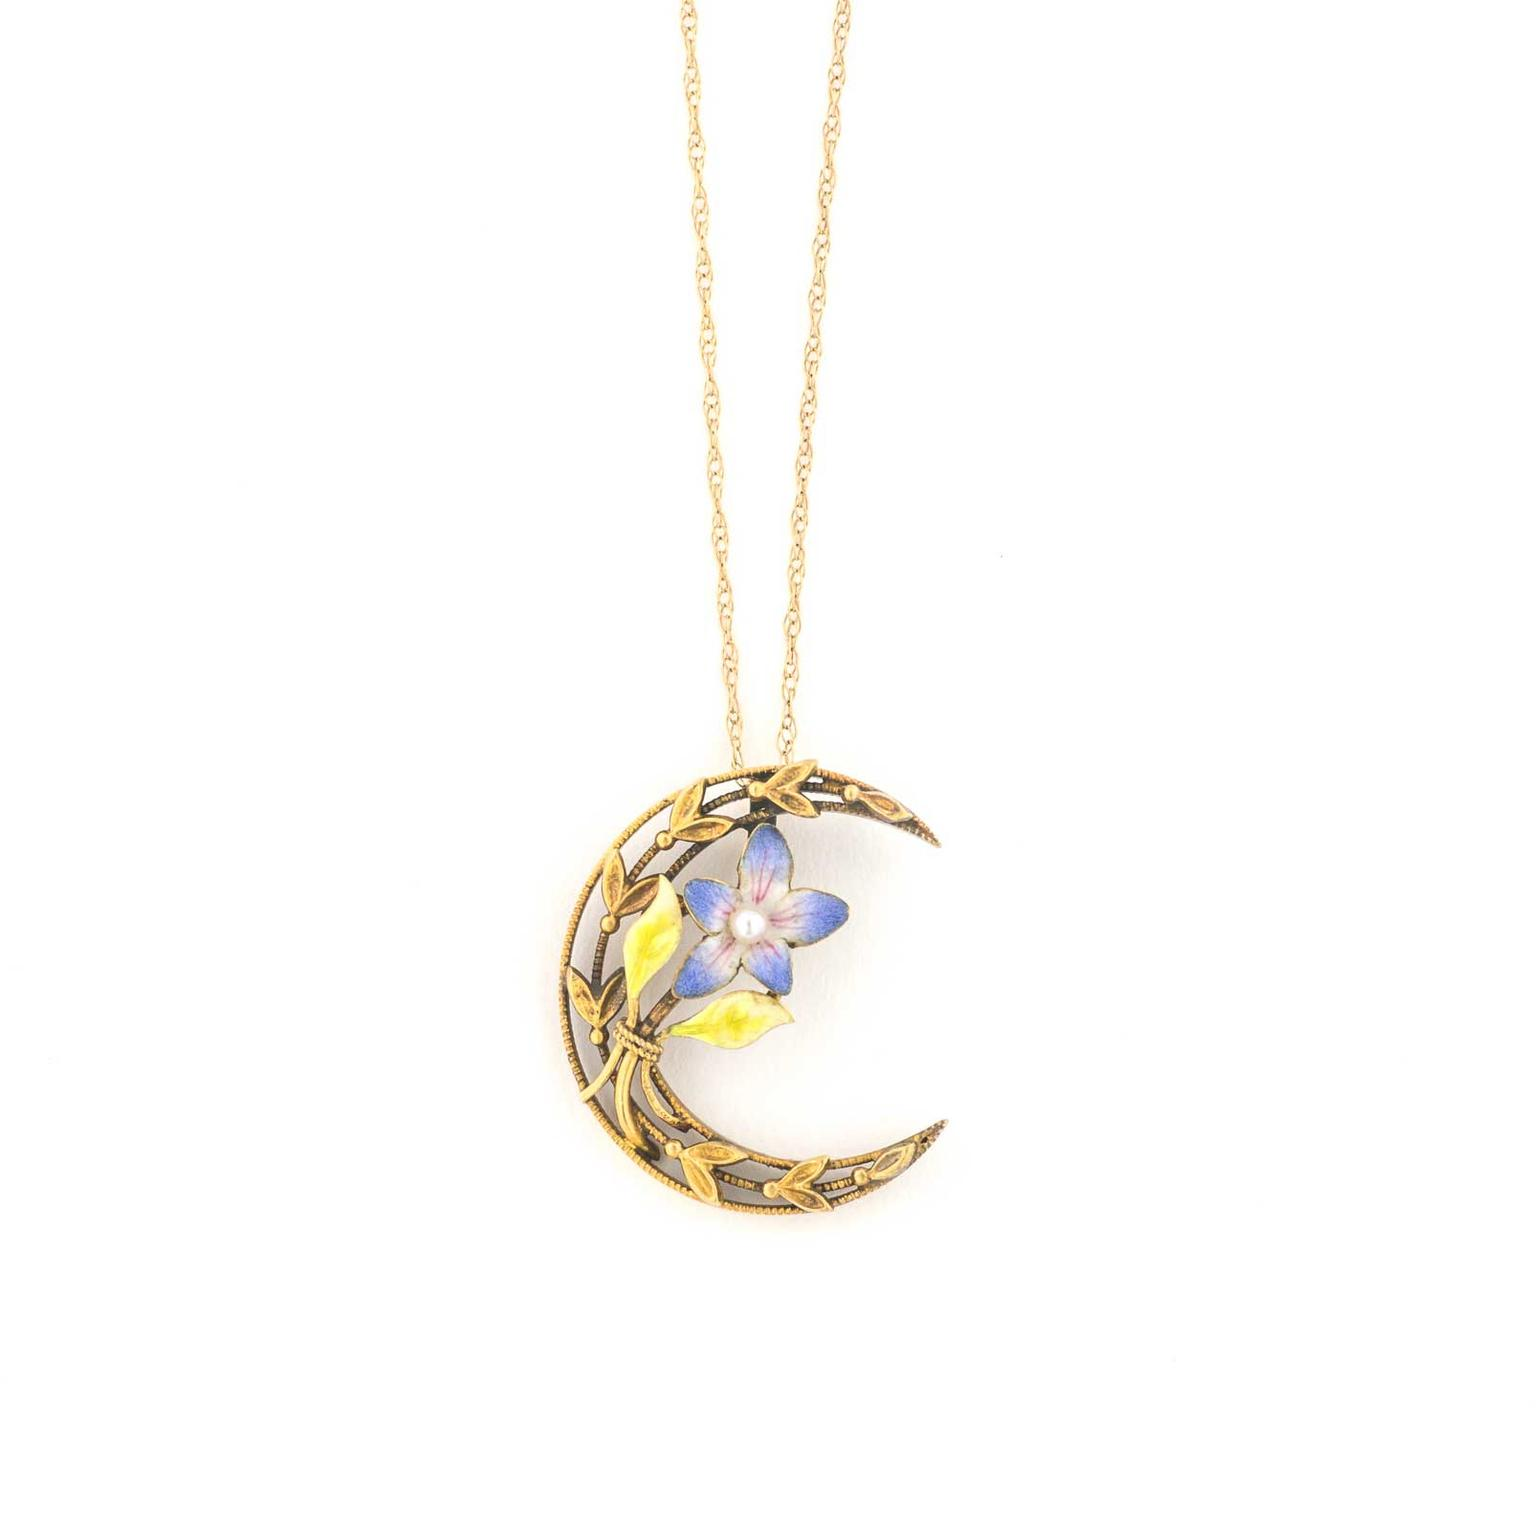 Trademark Antiques Honeymoon crescent and enamel violet necklace pendant in gold